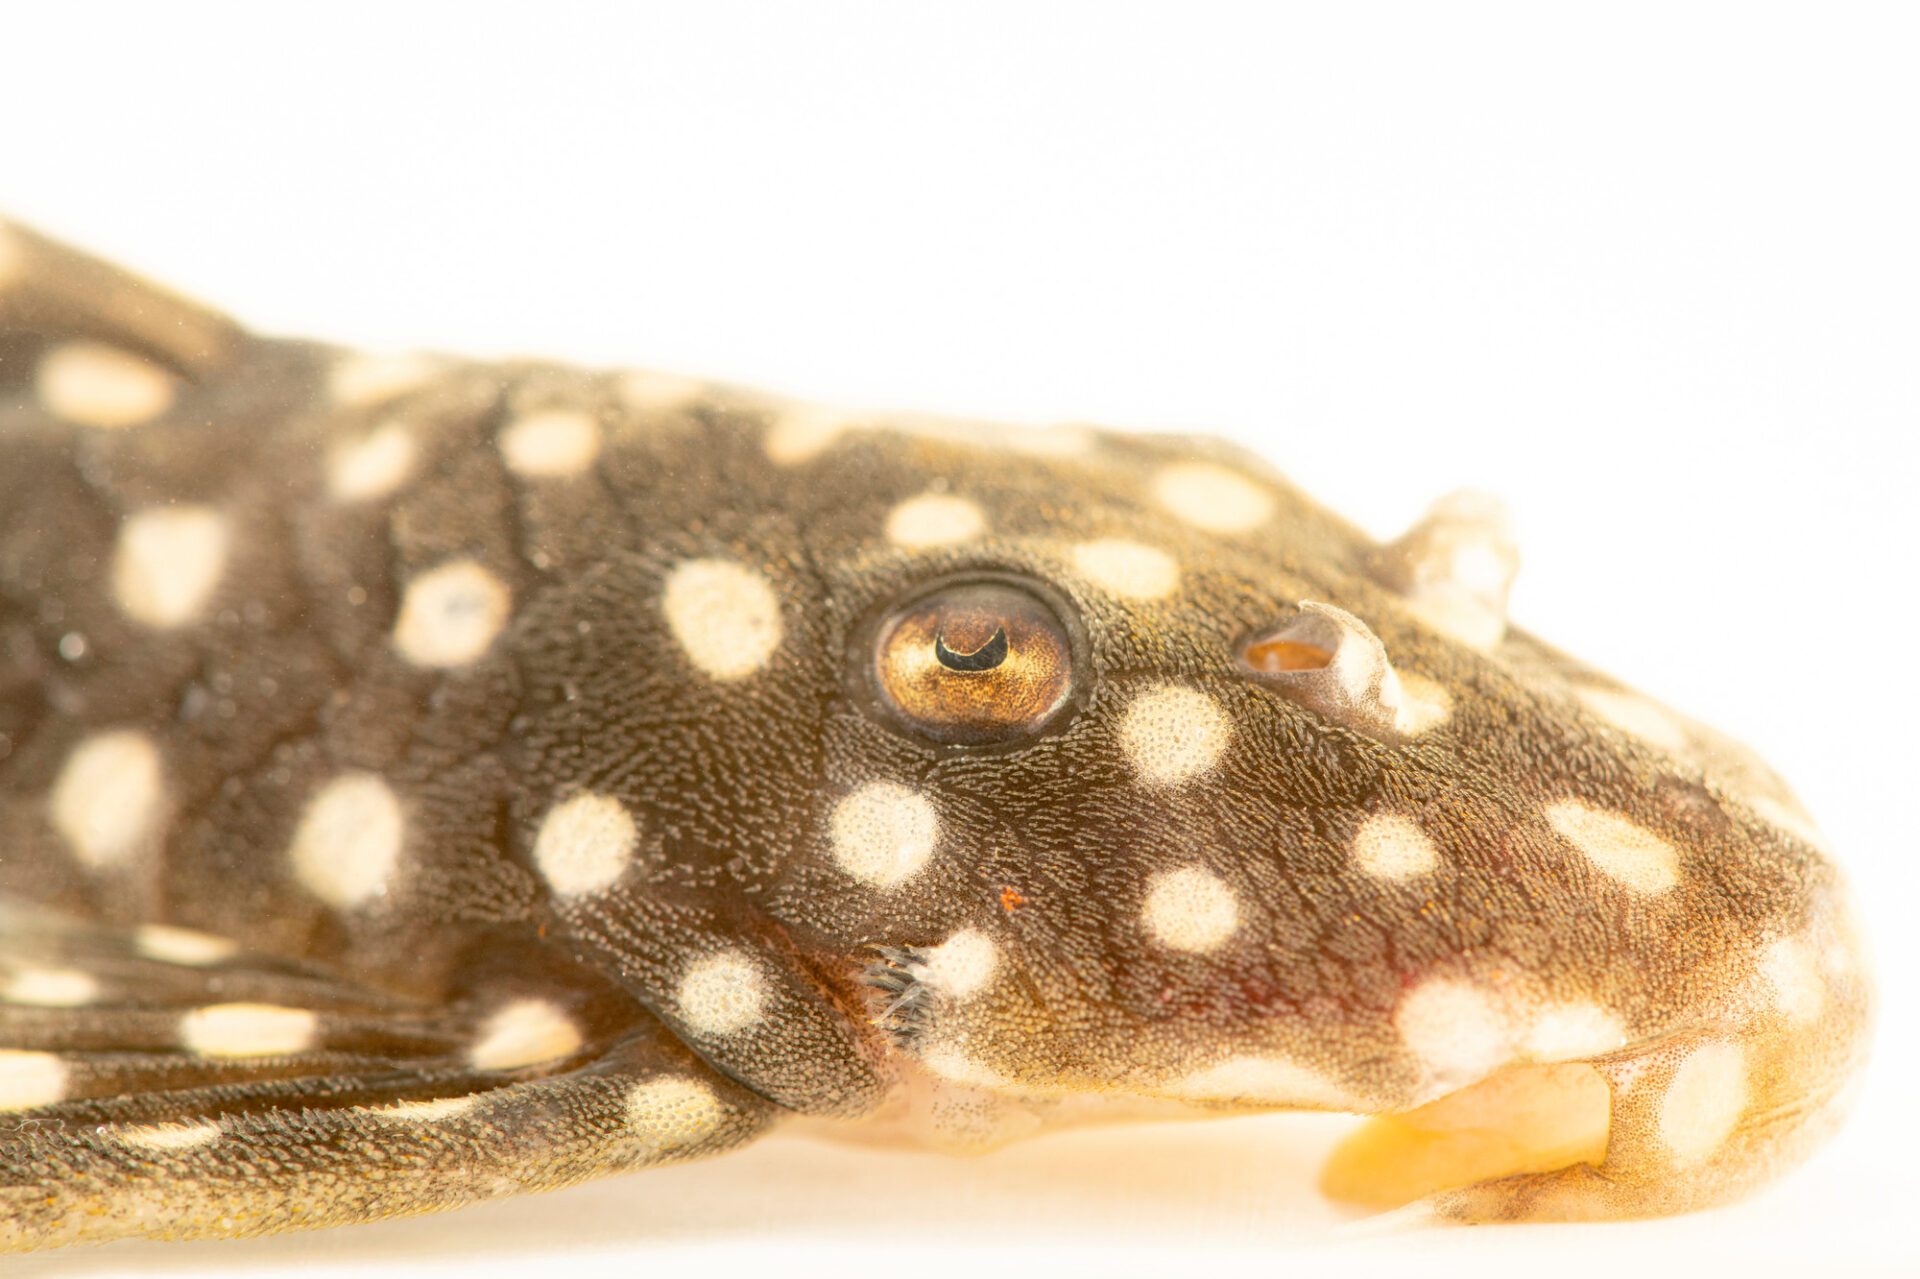 Photo: A snowball pleco (Hypancistrus inspector) at the aquarium of the Manaus Zoo. This Zoo is ran by the military, or CIGS.